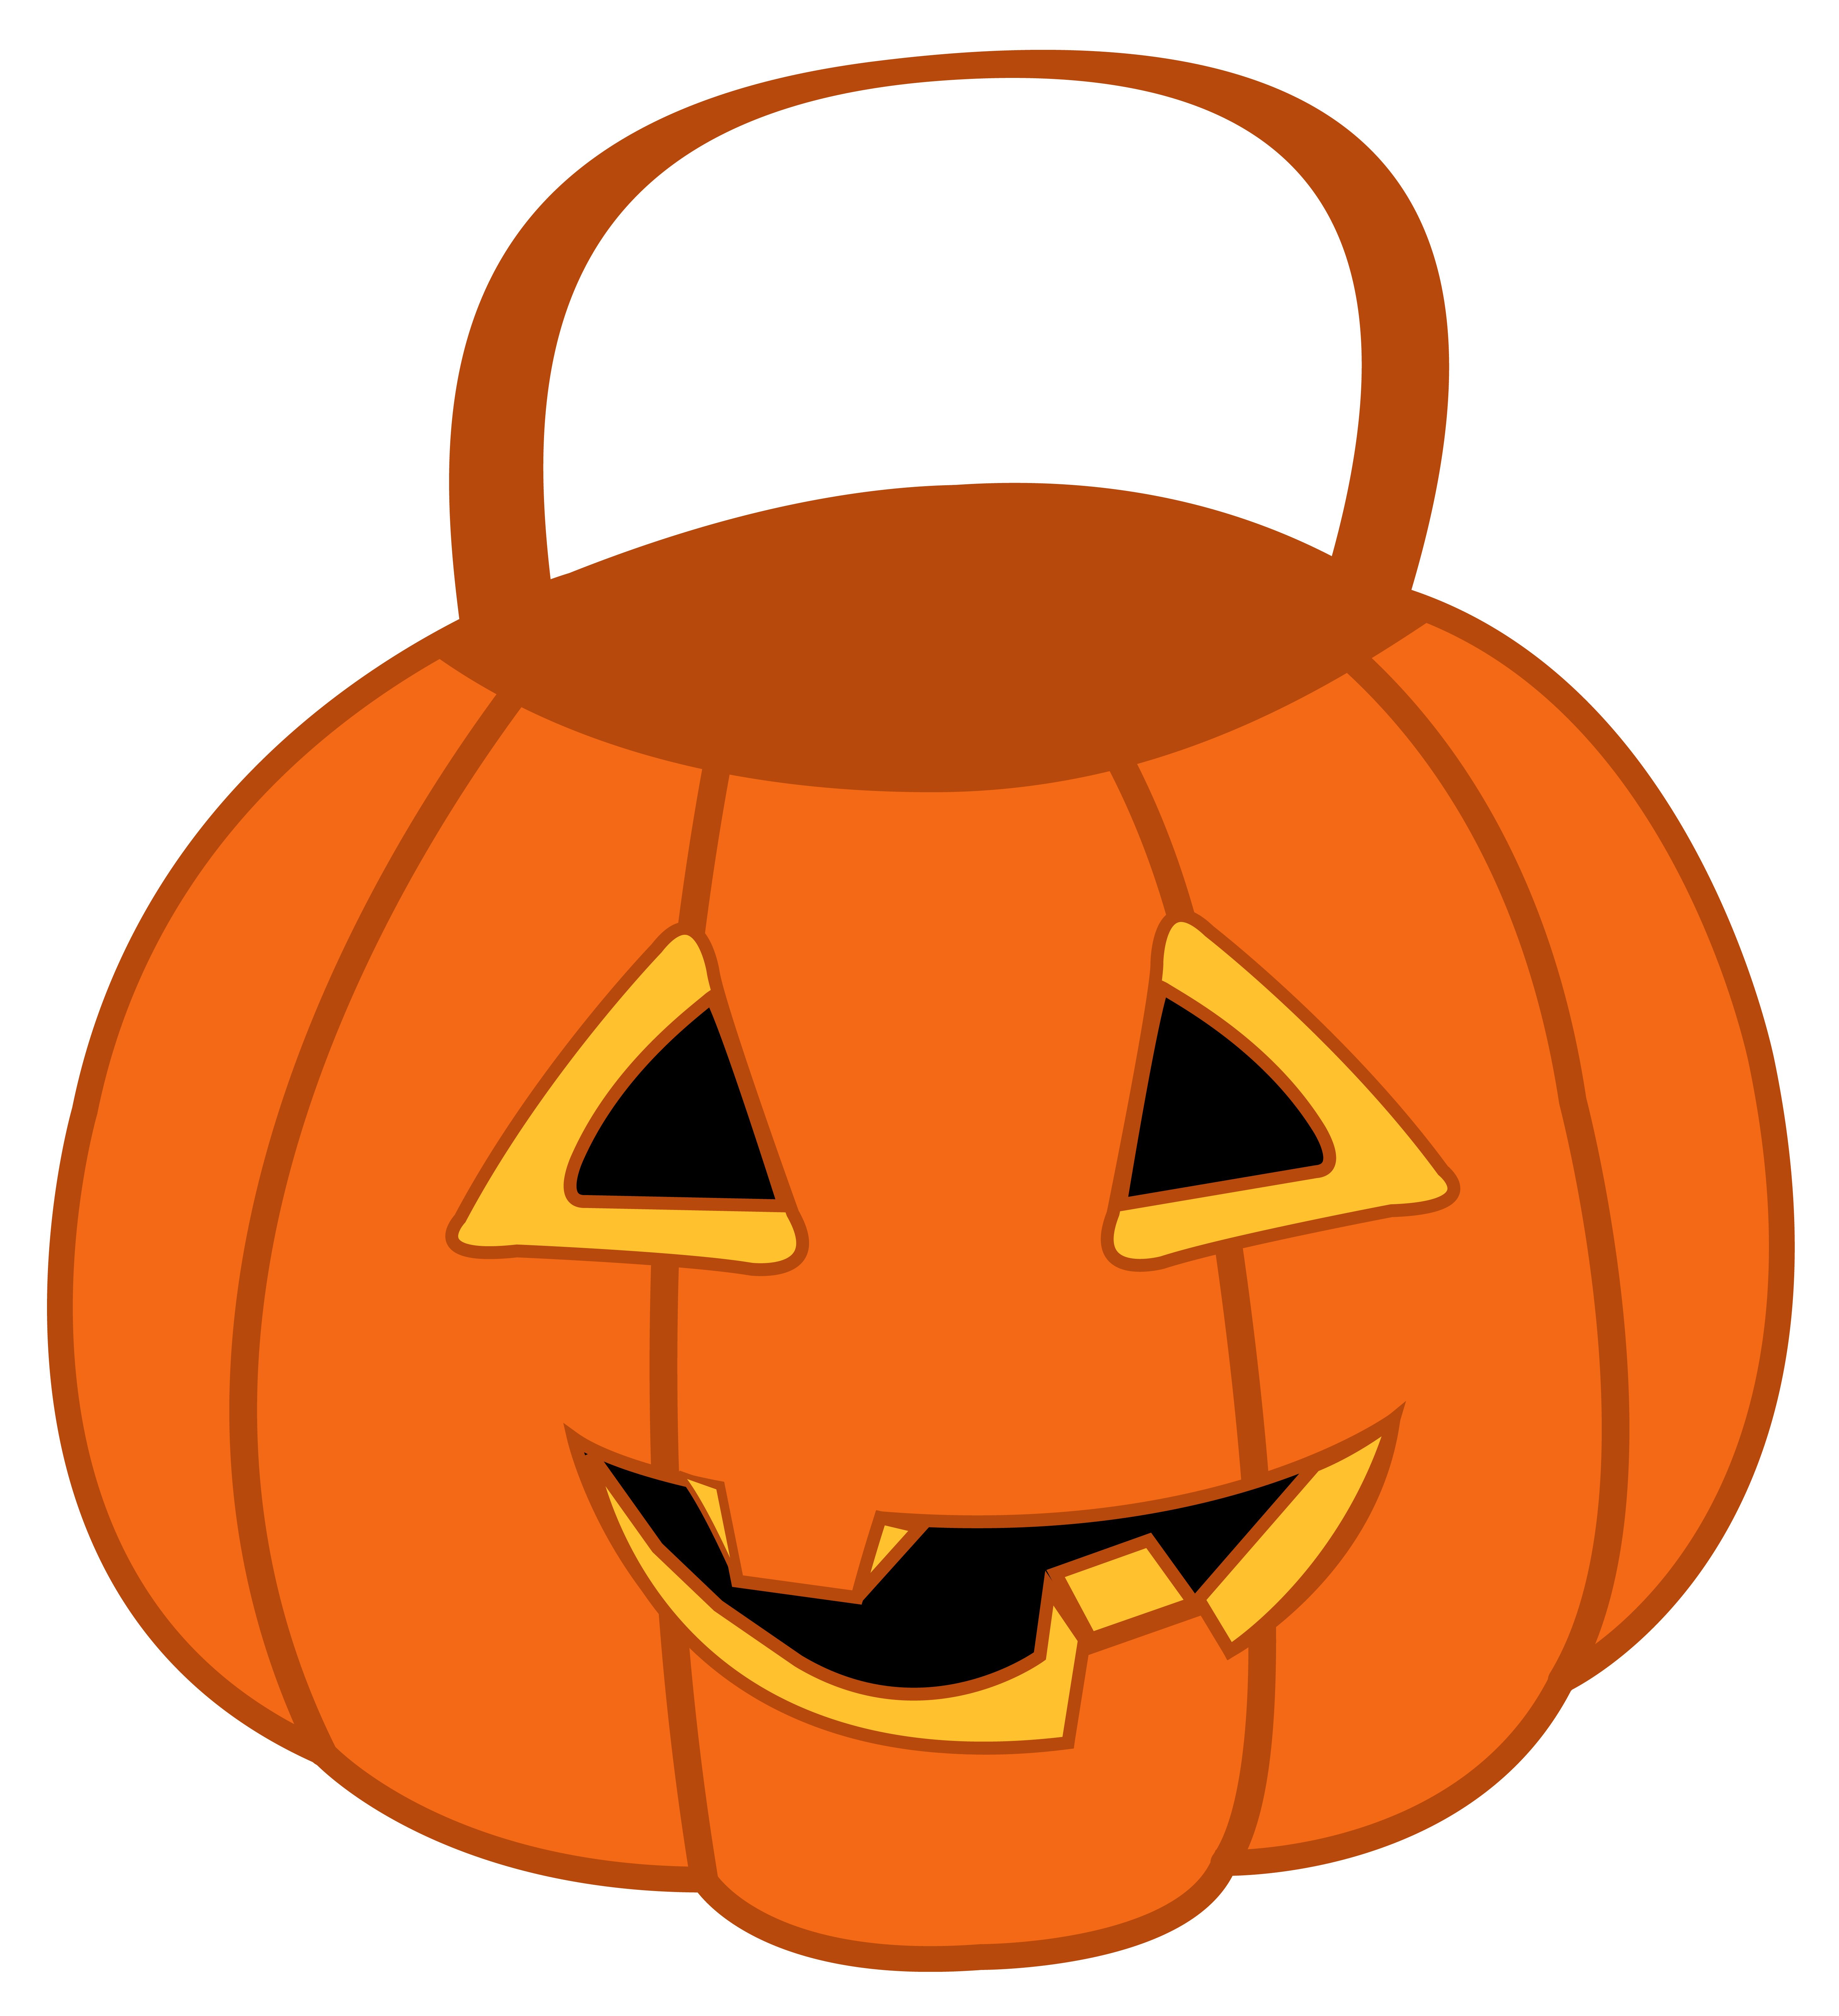 Scary pumpkin png image. Lantern clipart winter